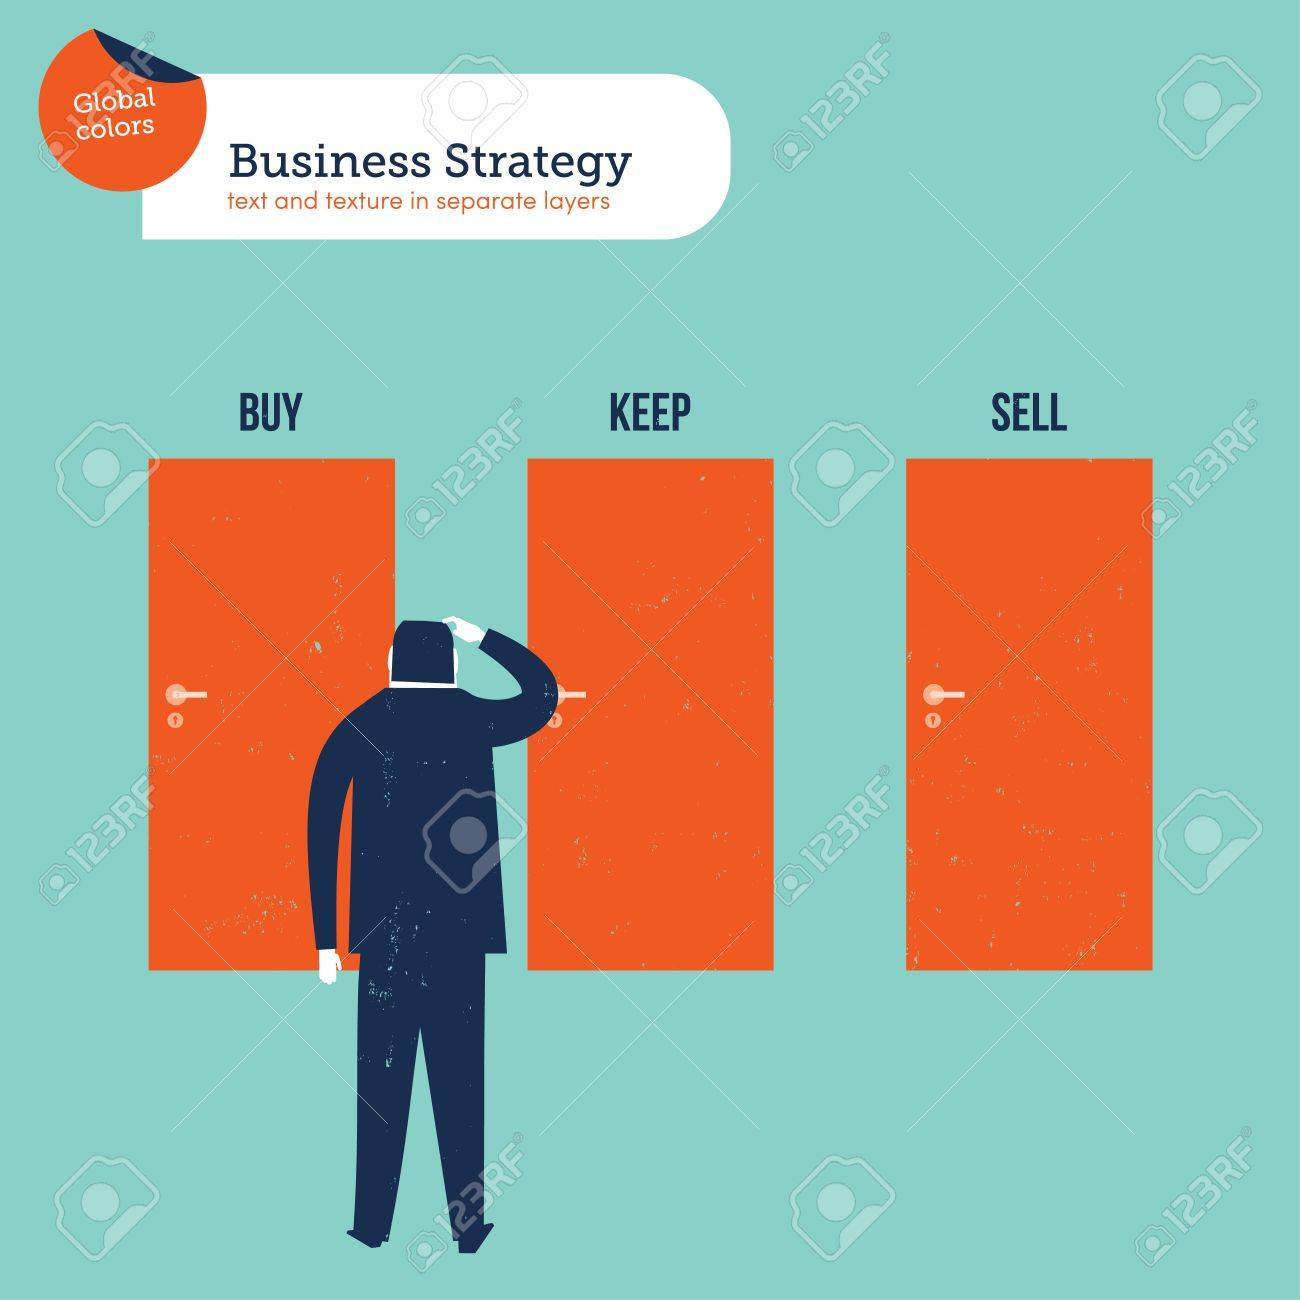 Businessman in front of three doors buy sell keep. Vector illustration file. Global colors  sc 1 st  123RF.com & Businessman In Front Of Three Doors Buy Sell Keep. Vector ...